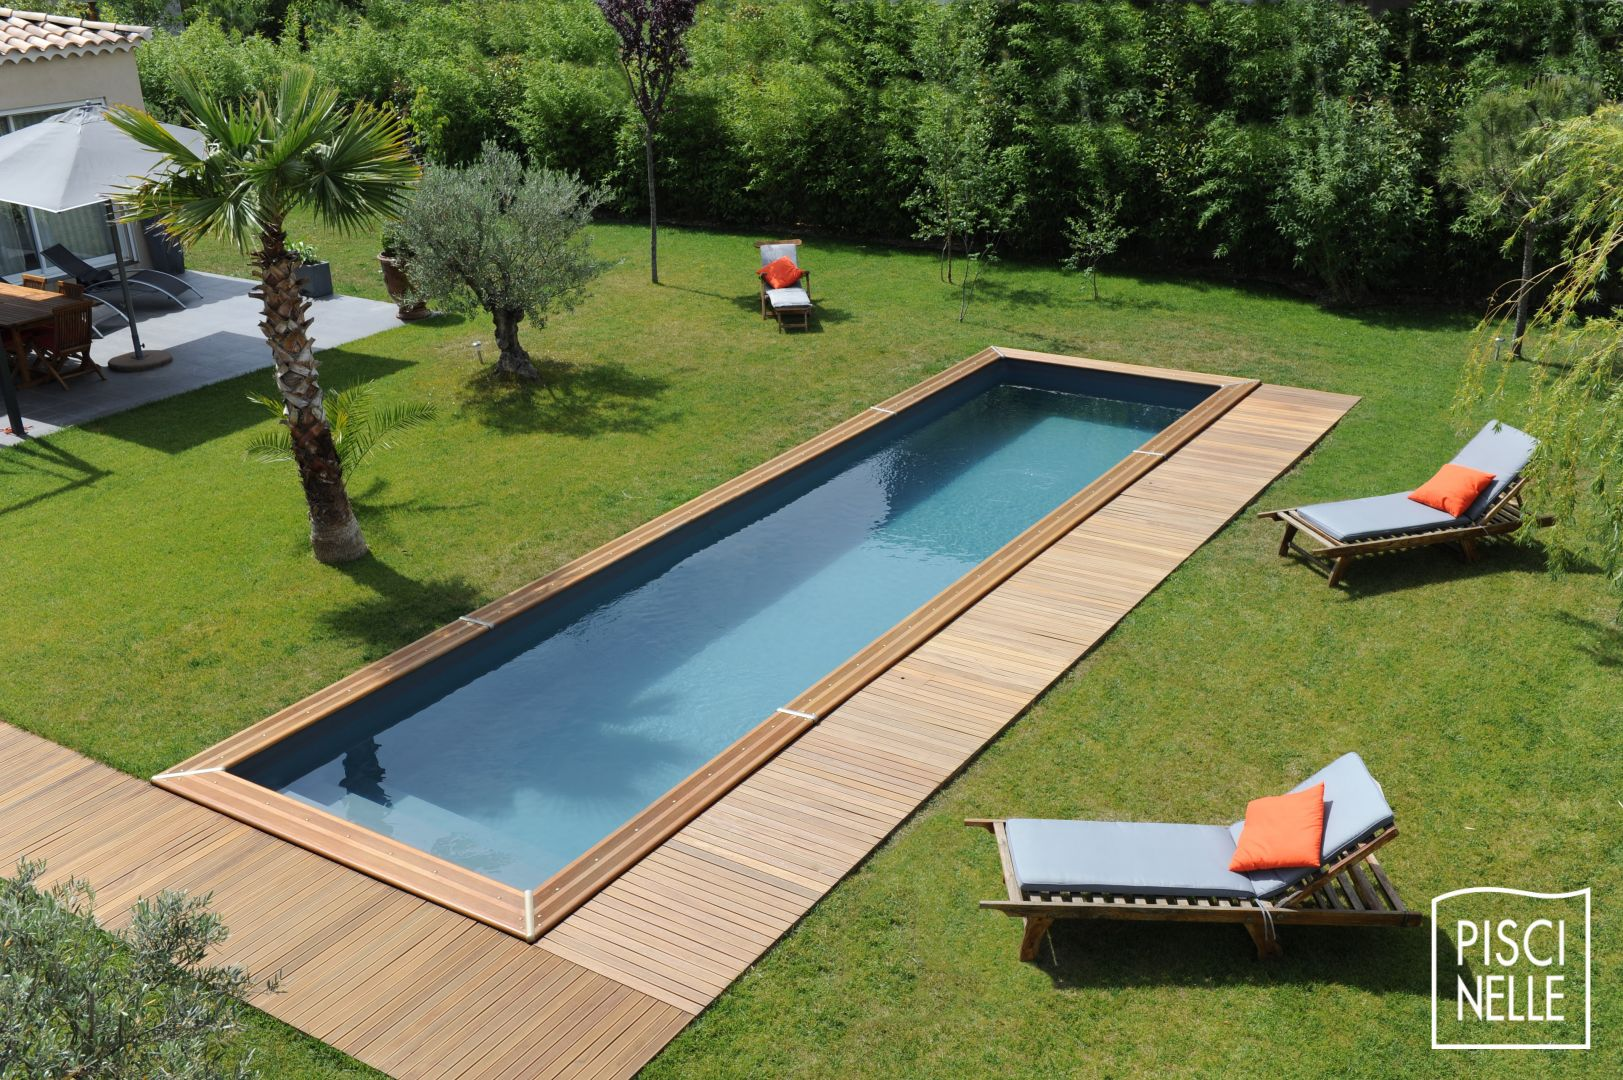 Piscine enterr e les piscines enterr es en kit par for Piscine hors sol jacuzzi